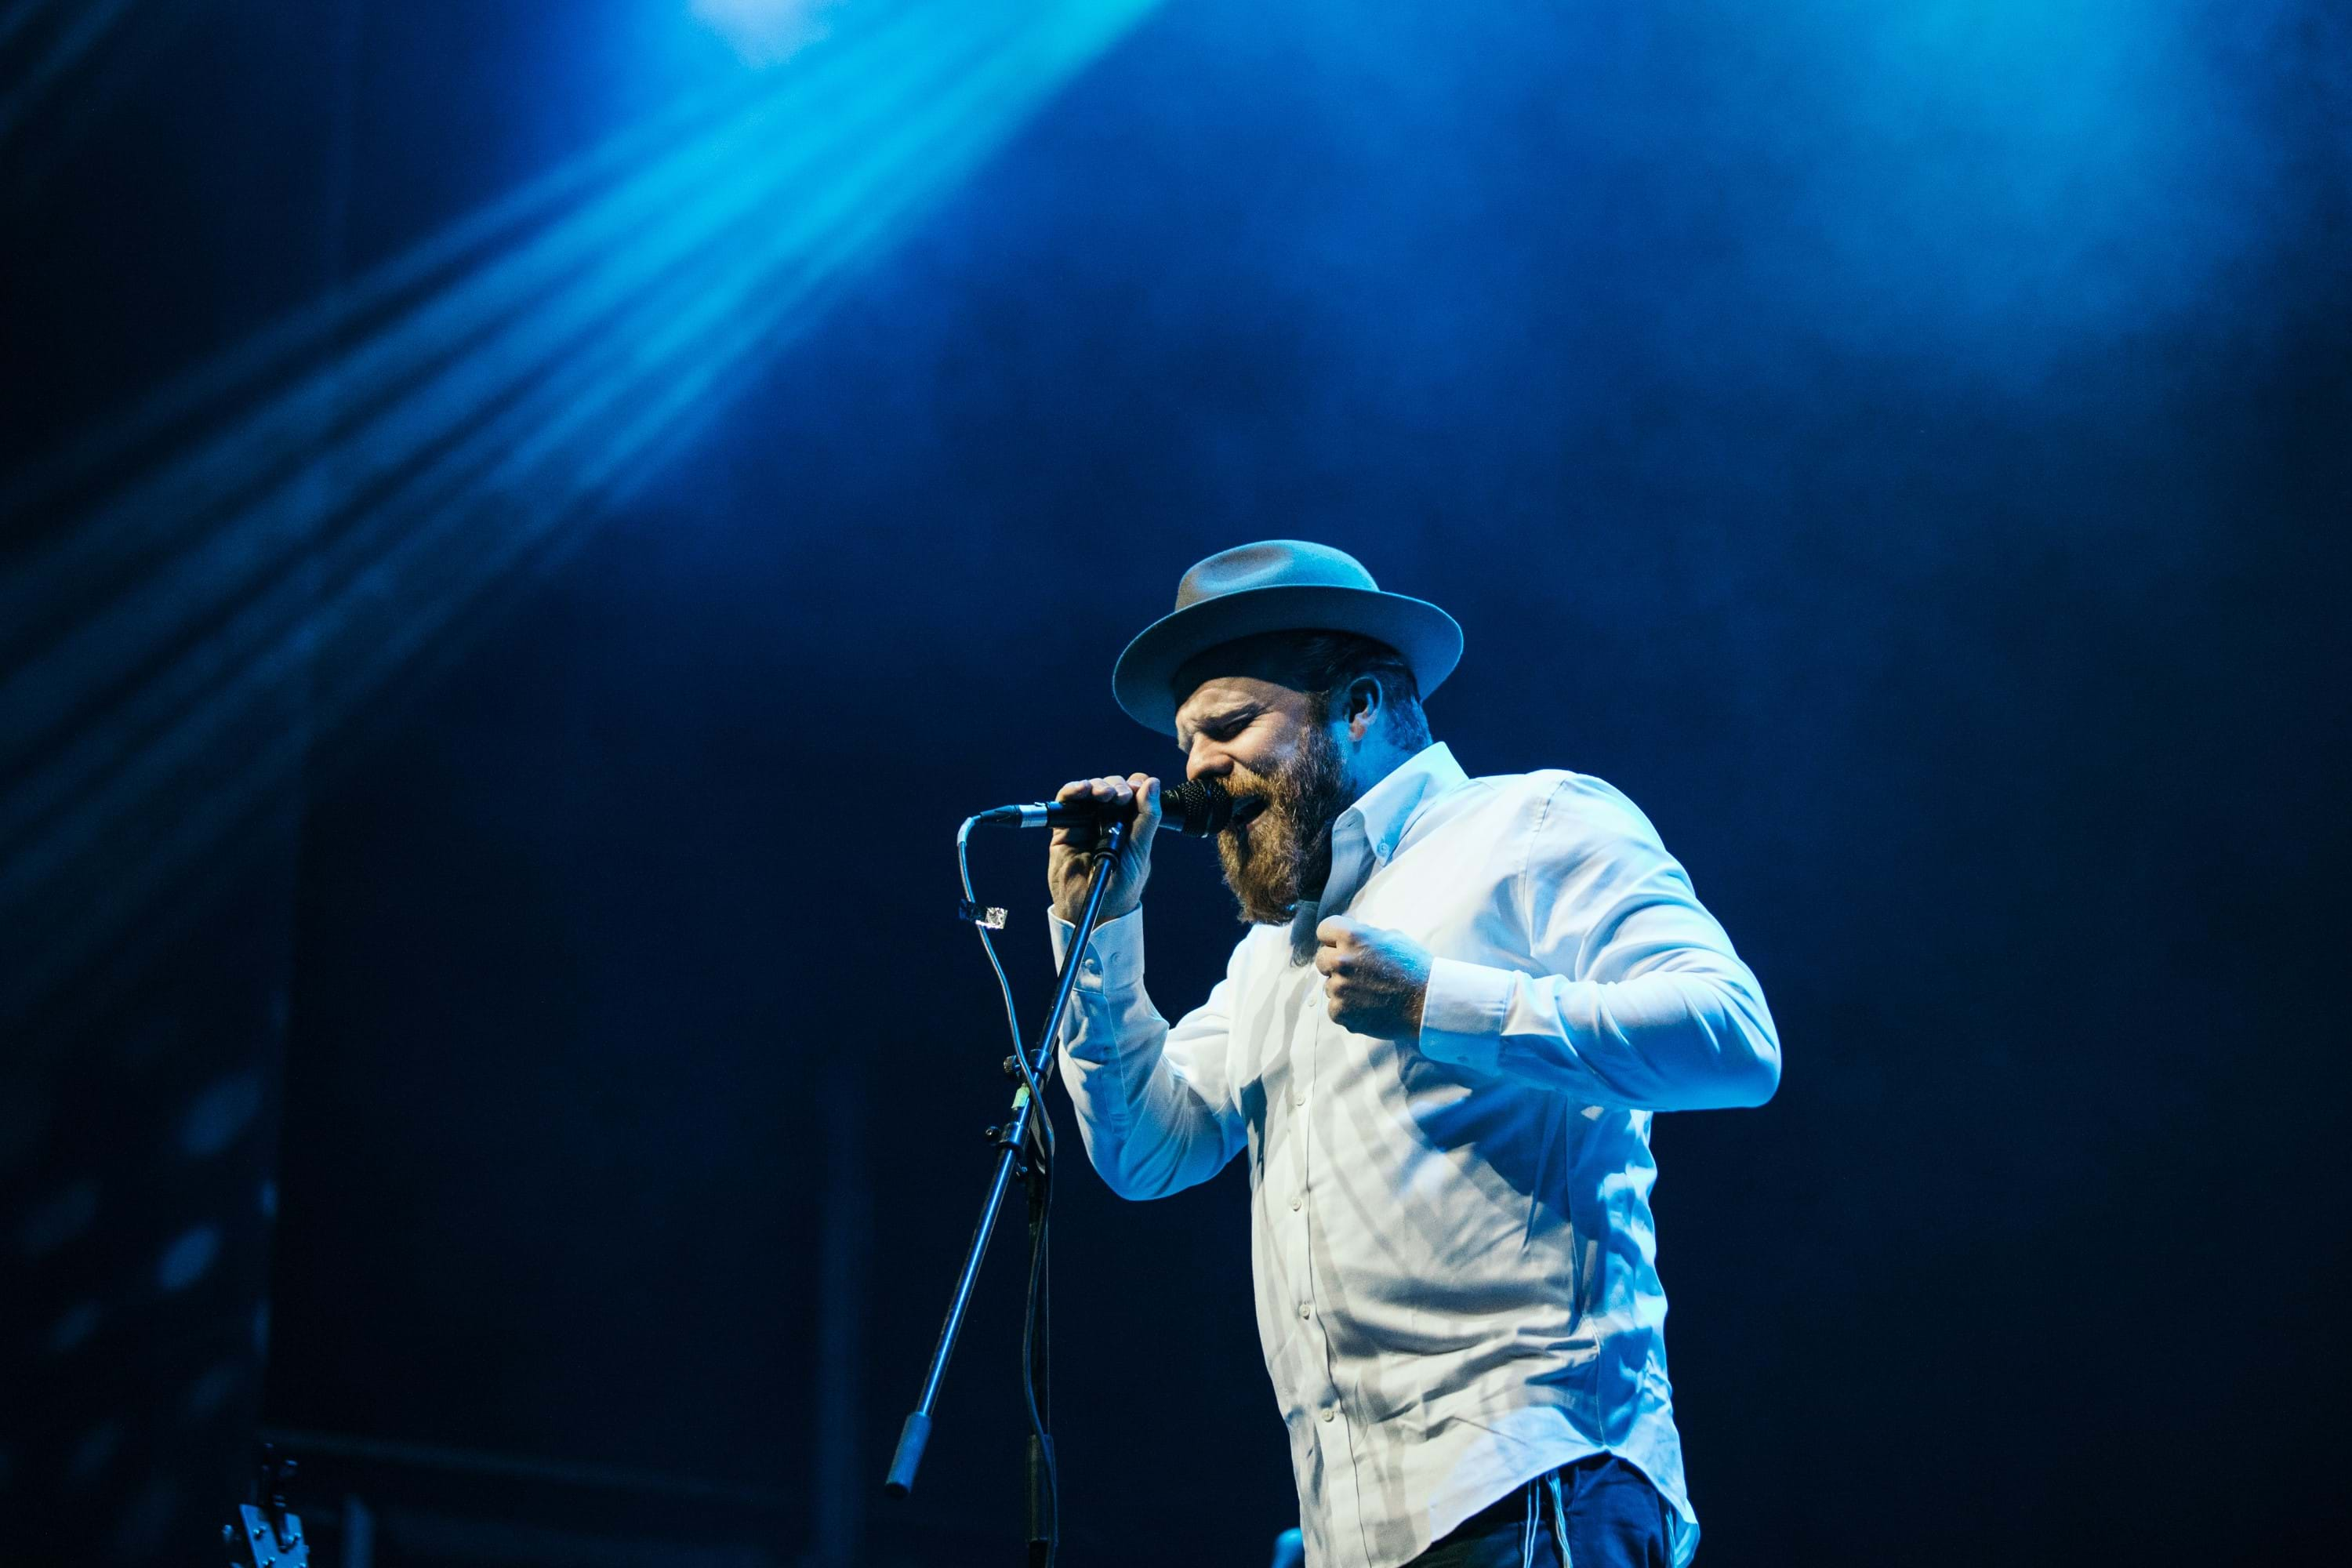 2019.10.30 - Alex Clare - 1930 Moscow